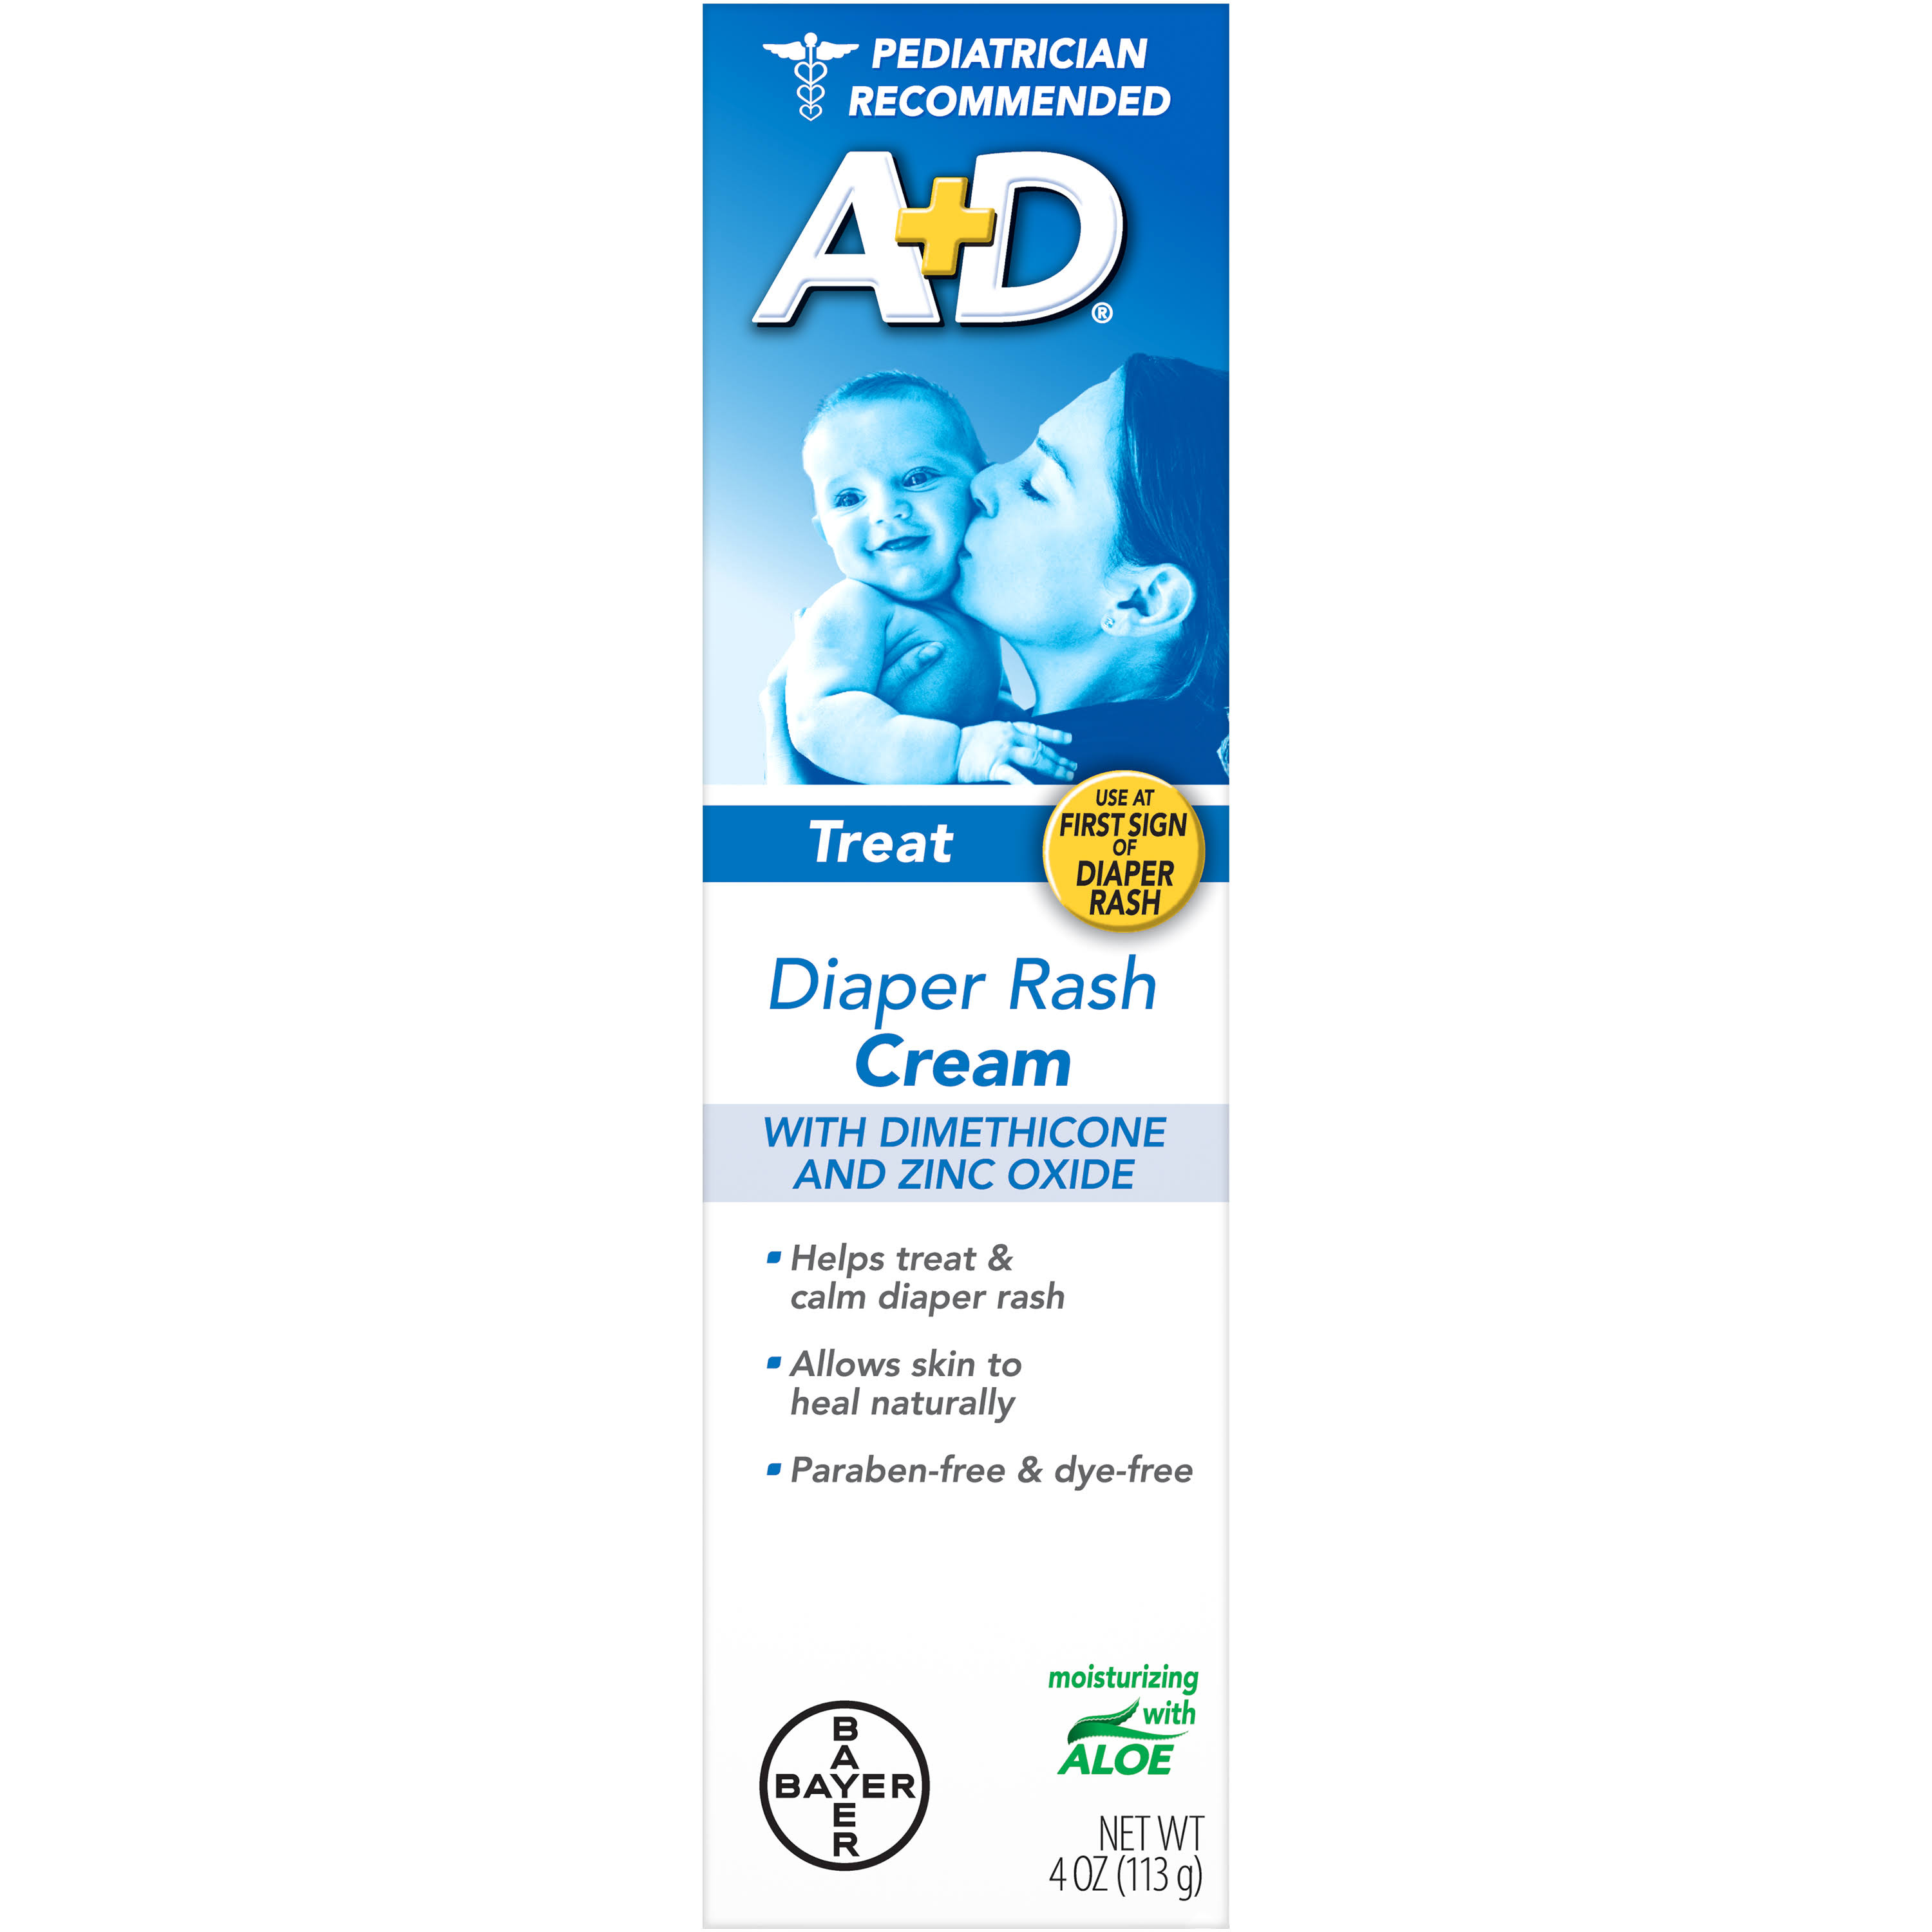 Bayer A+D Treat Diaper Rash Cream - 4 oz